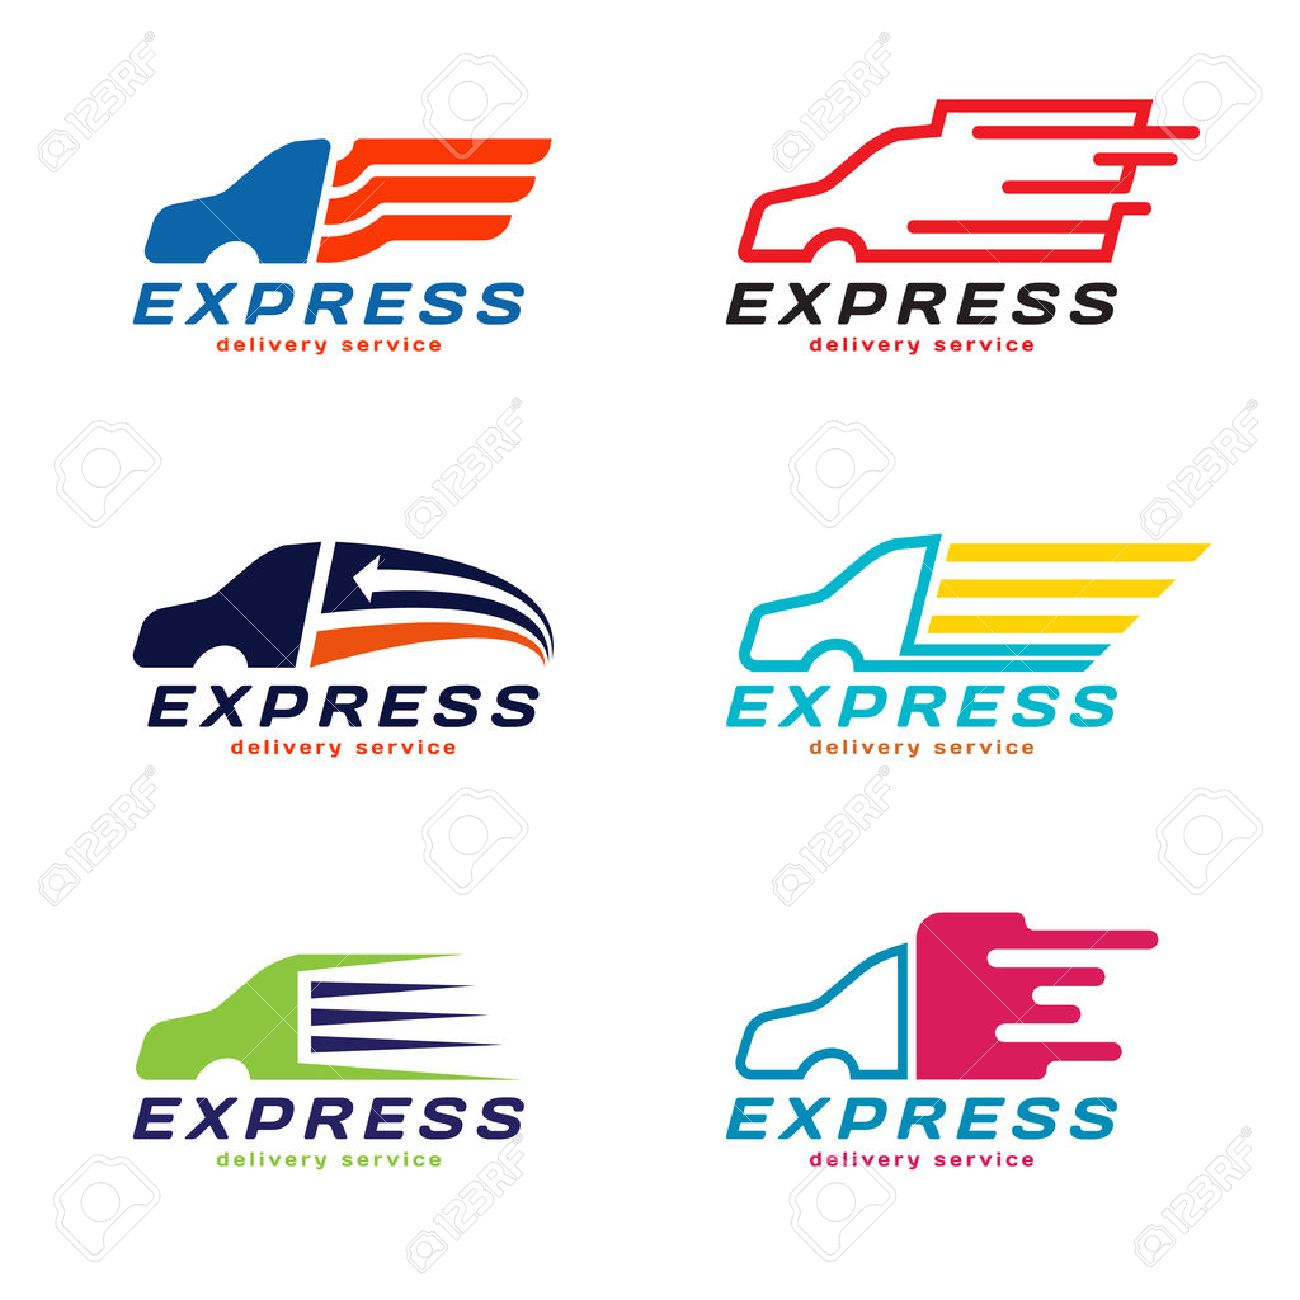 Truck car express delivery service logo vector set design stock vector 55197300